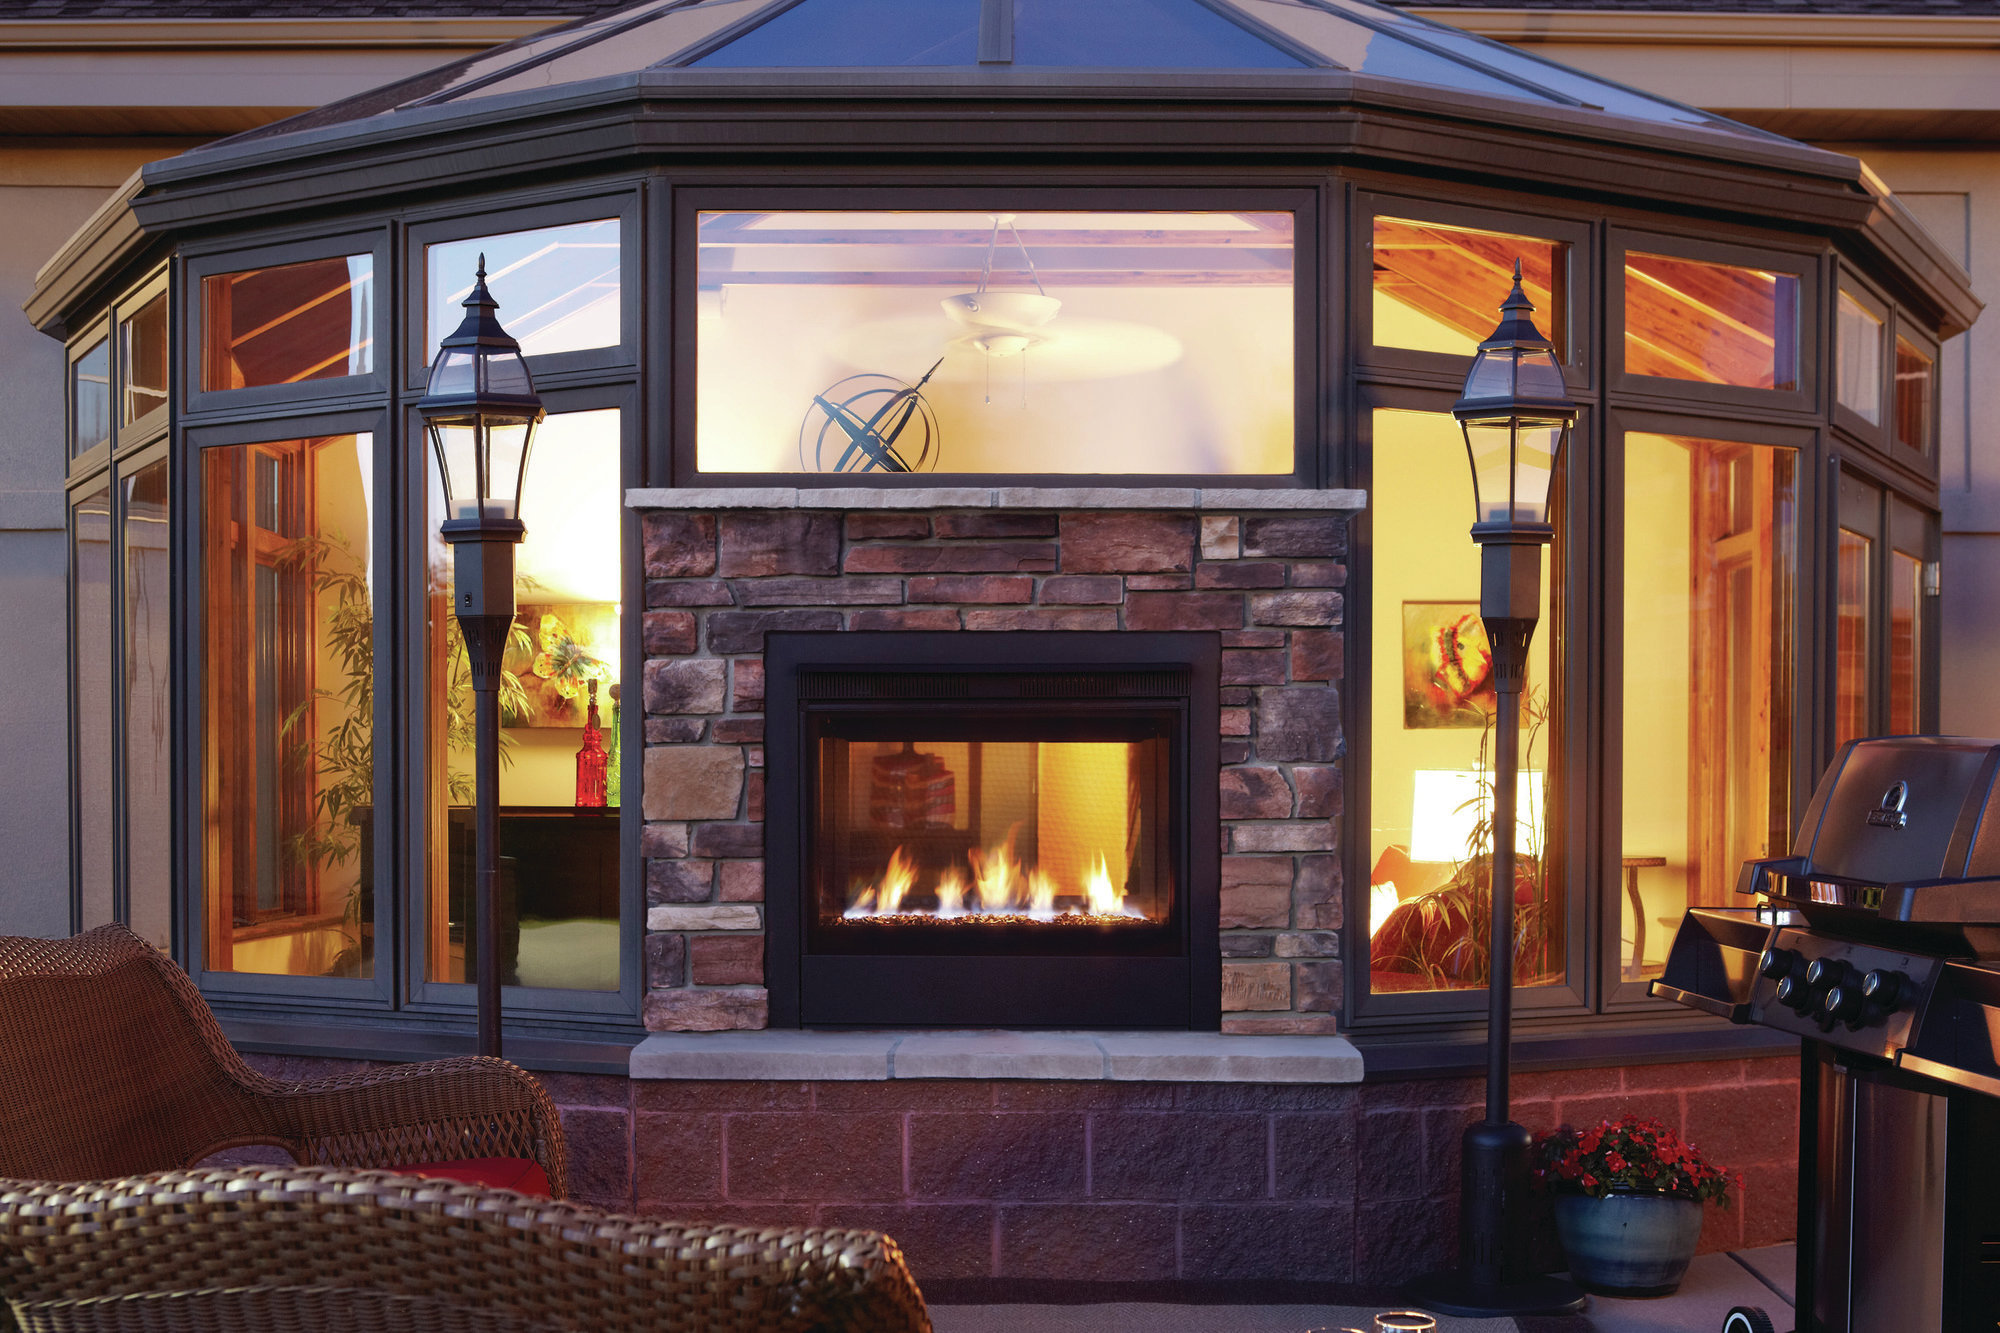 Double Sided Gas Fireplace Indoor Outdoor | FIREPLACE DESIGN IDEAS